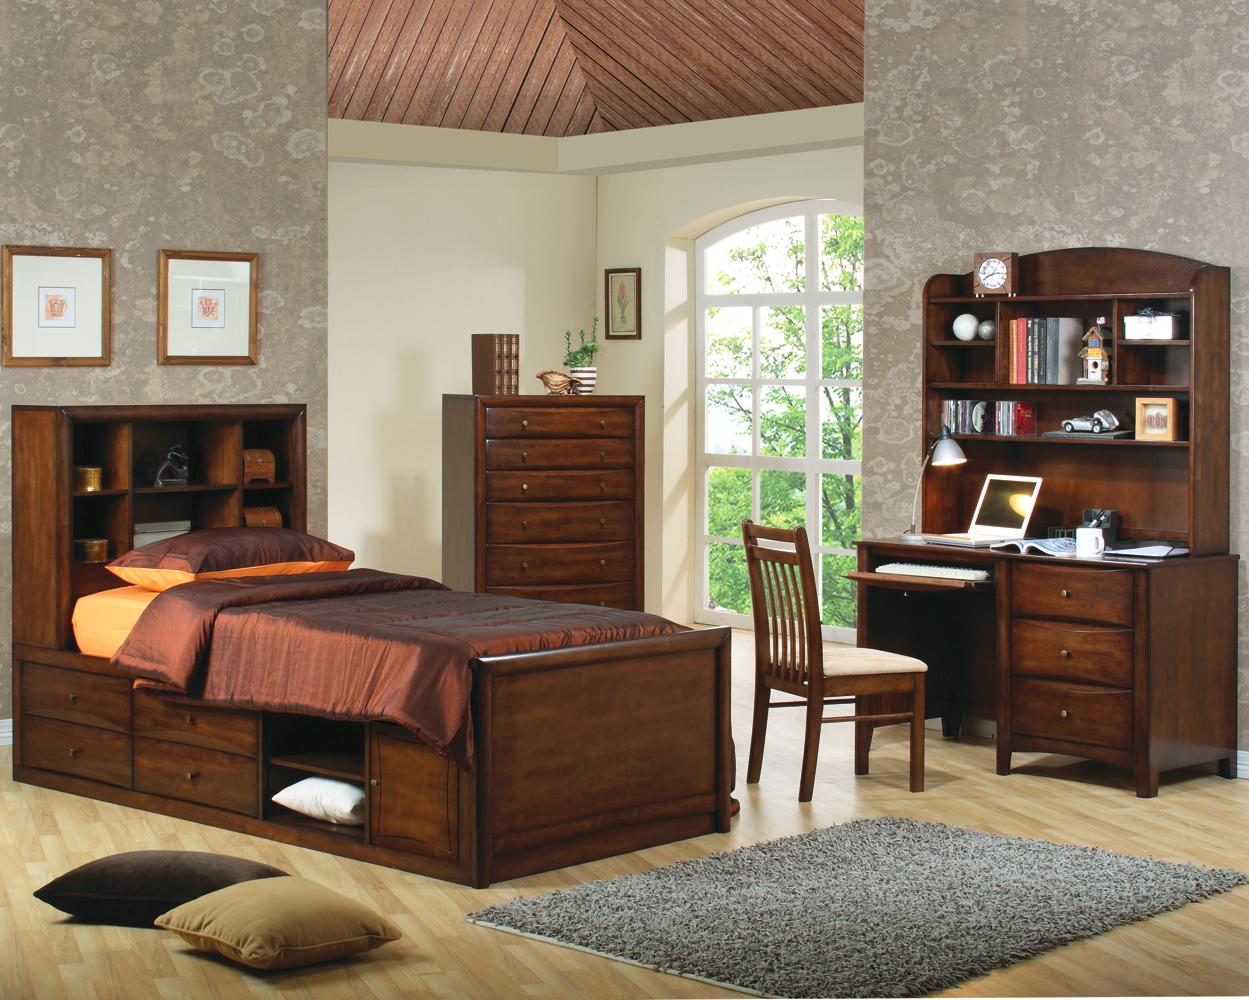 Youth bedroom set by Coaster. Sleep Concepts Mattress   Futon Factory  Amish Rustics   Furniture